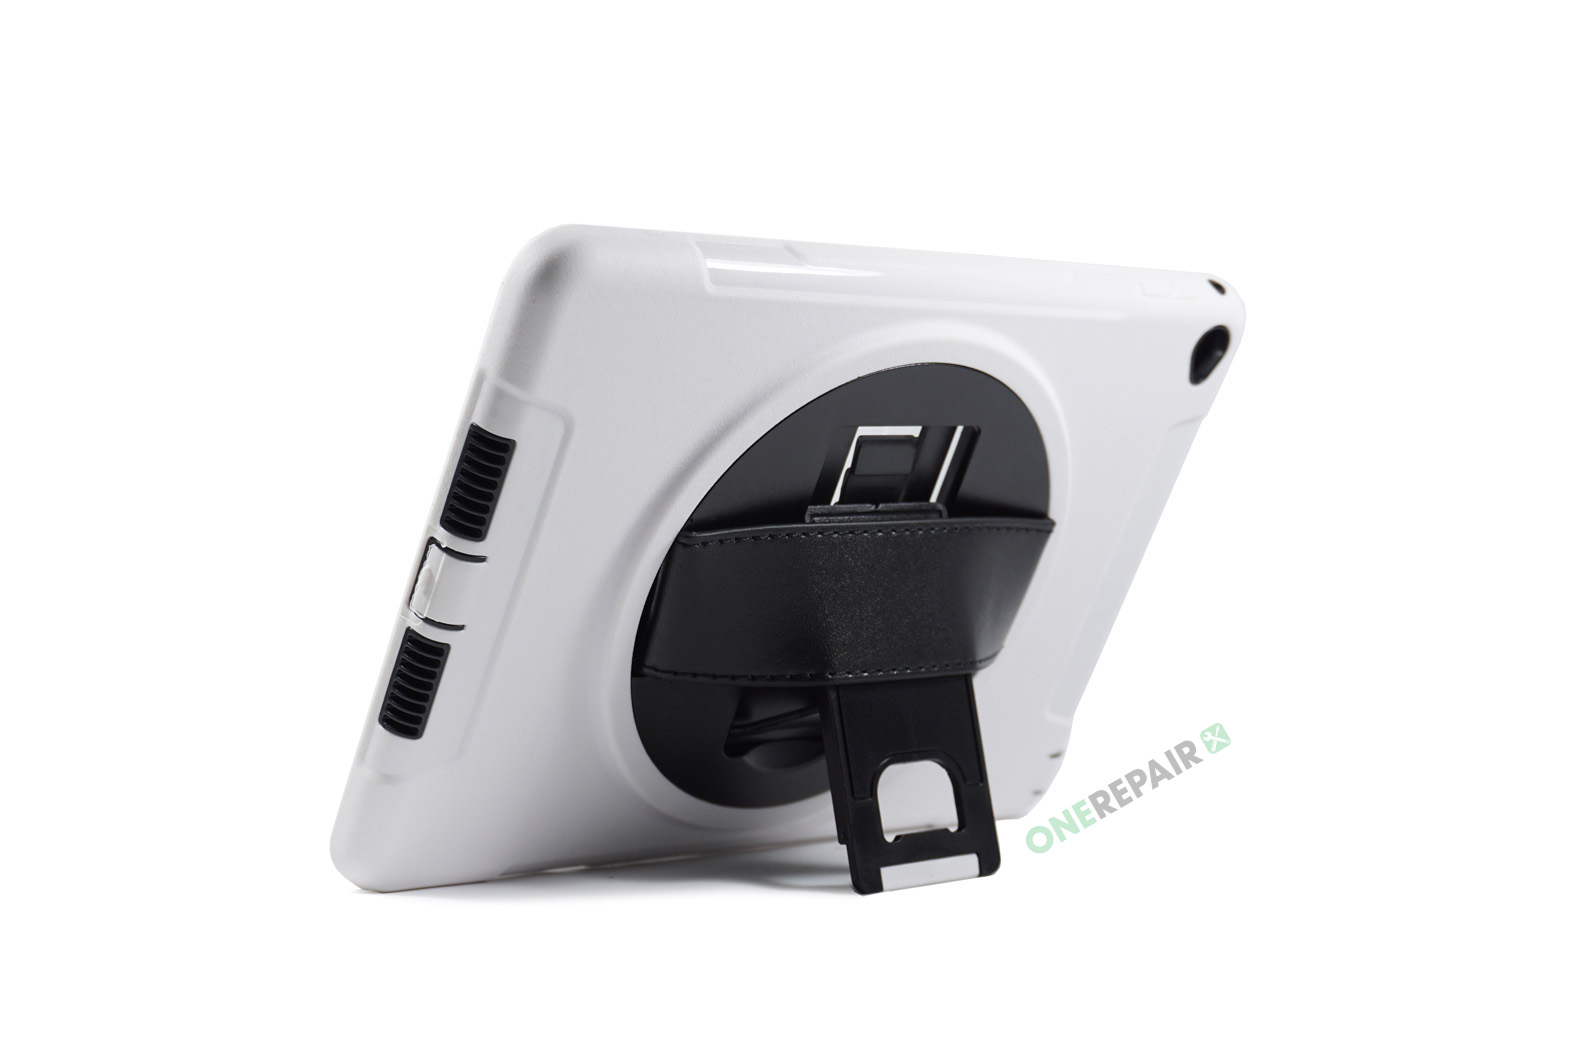 351070_iPad_Air2_2_A1566_A1567_3-in-1_Thin_Boernecover_Børne_Hardcase_Cover_Hvid_Graa_OneRepair_00005